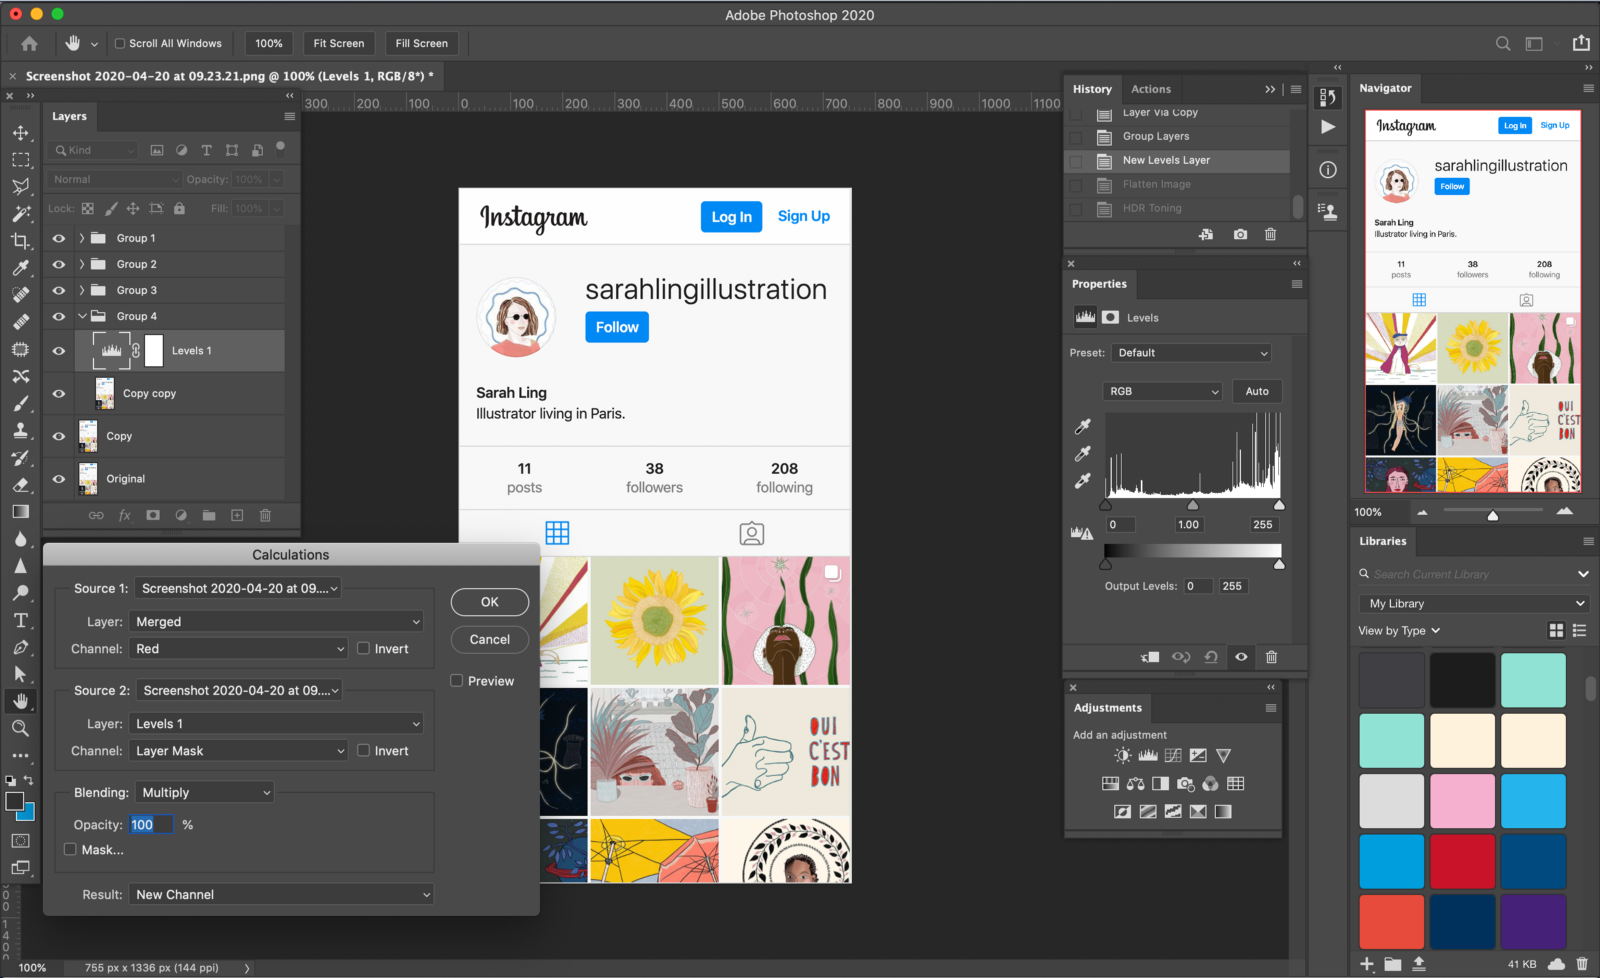 Photoshop open with lots of tool panels open and a photo of an Instagram feed open in the main window